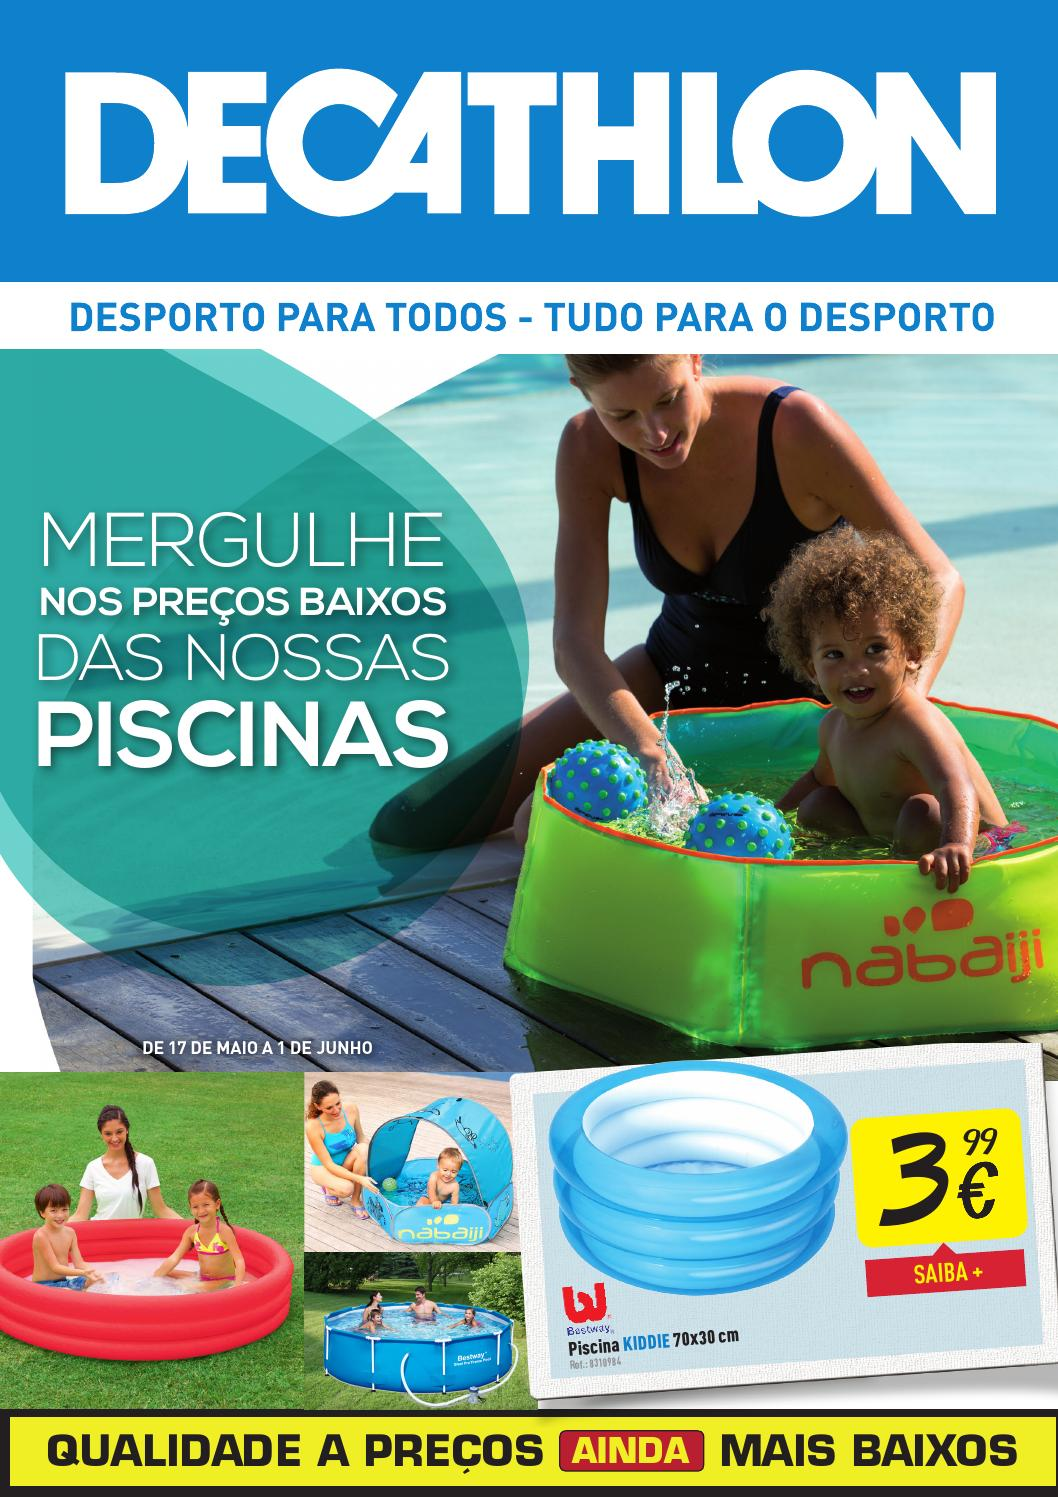 Oferta de piscinas decathlon ver o 2014 by decathlon for Ofertas de piscinas estructurales